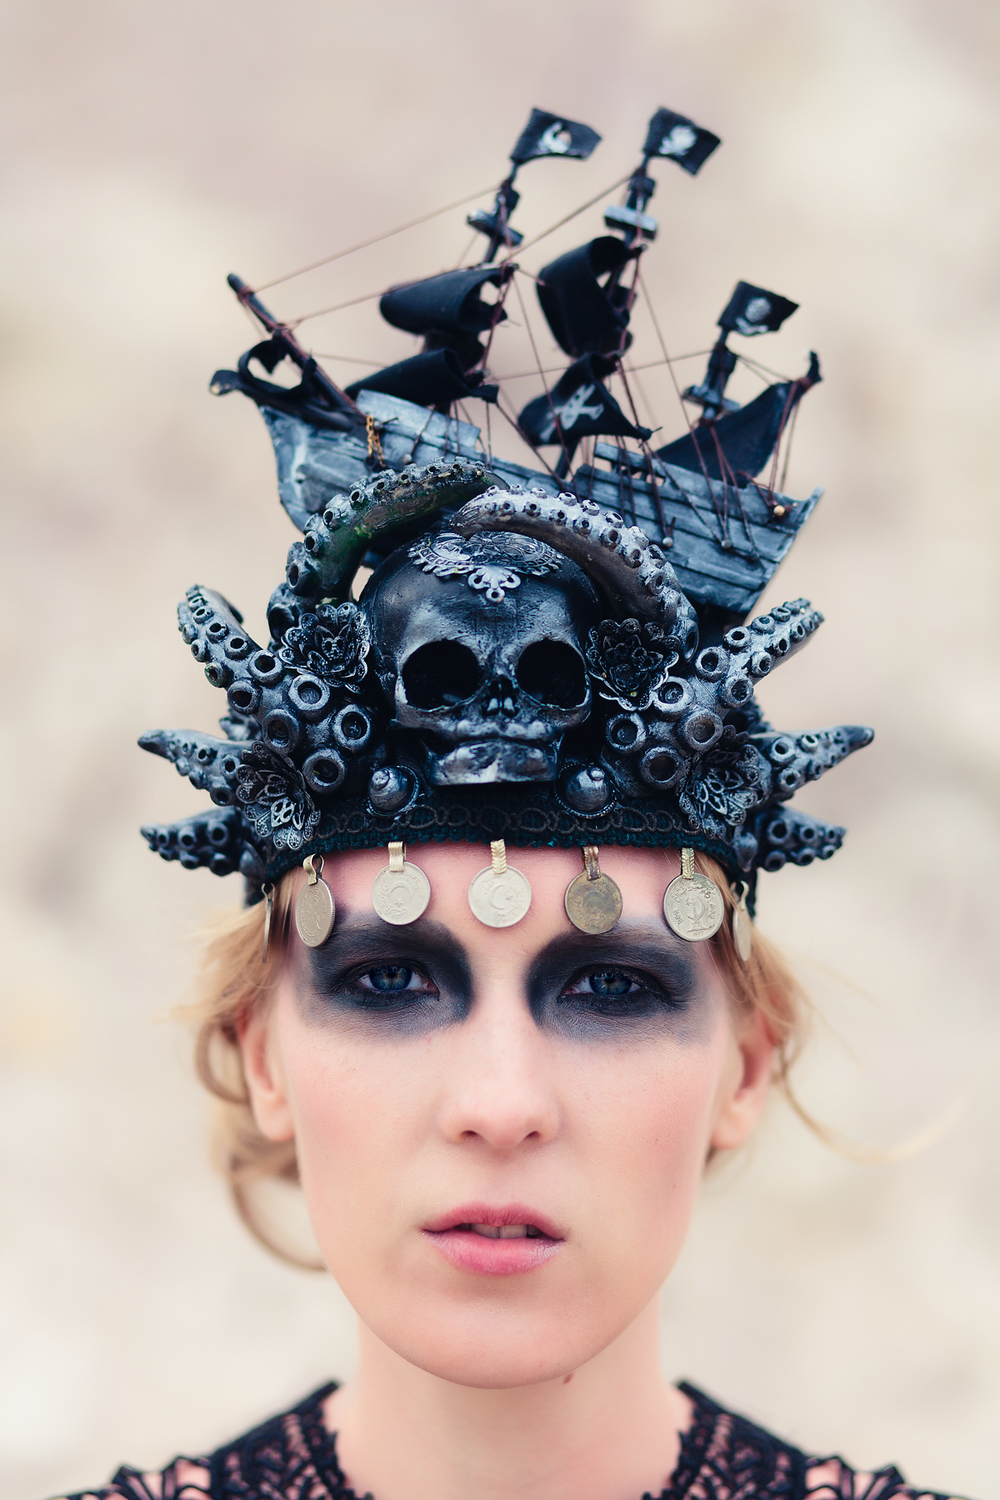 Woman wearing a pirate ship hat